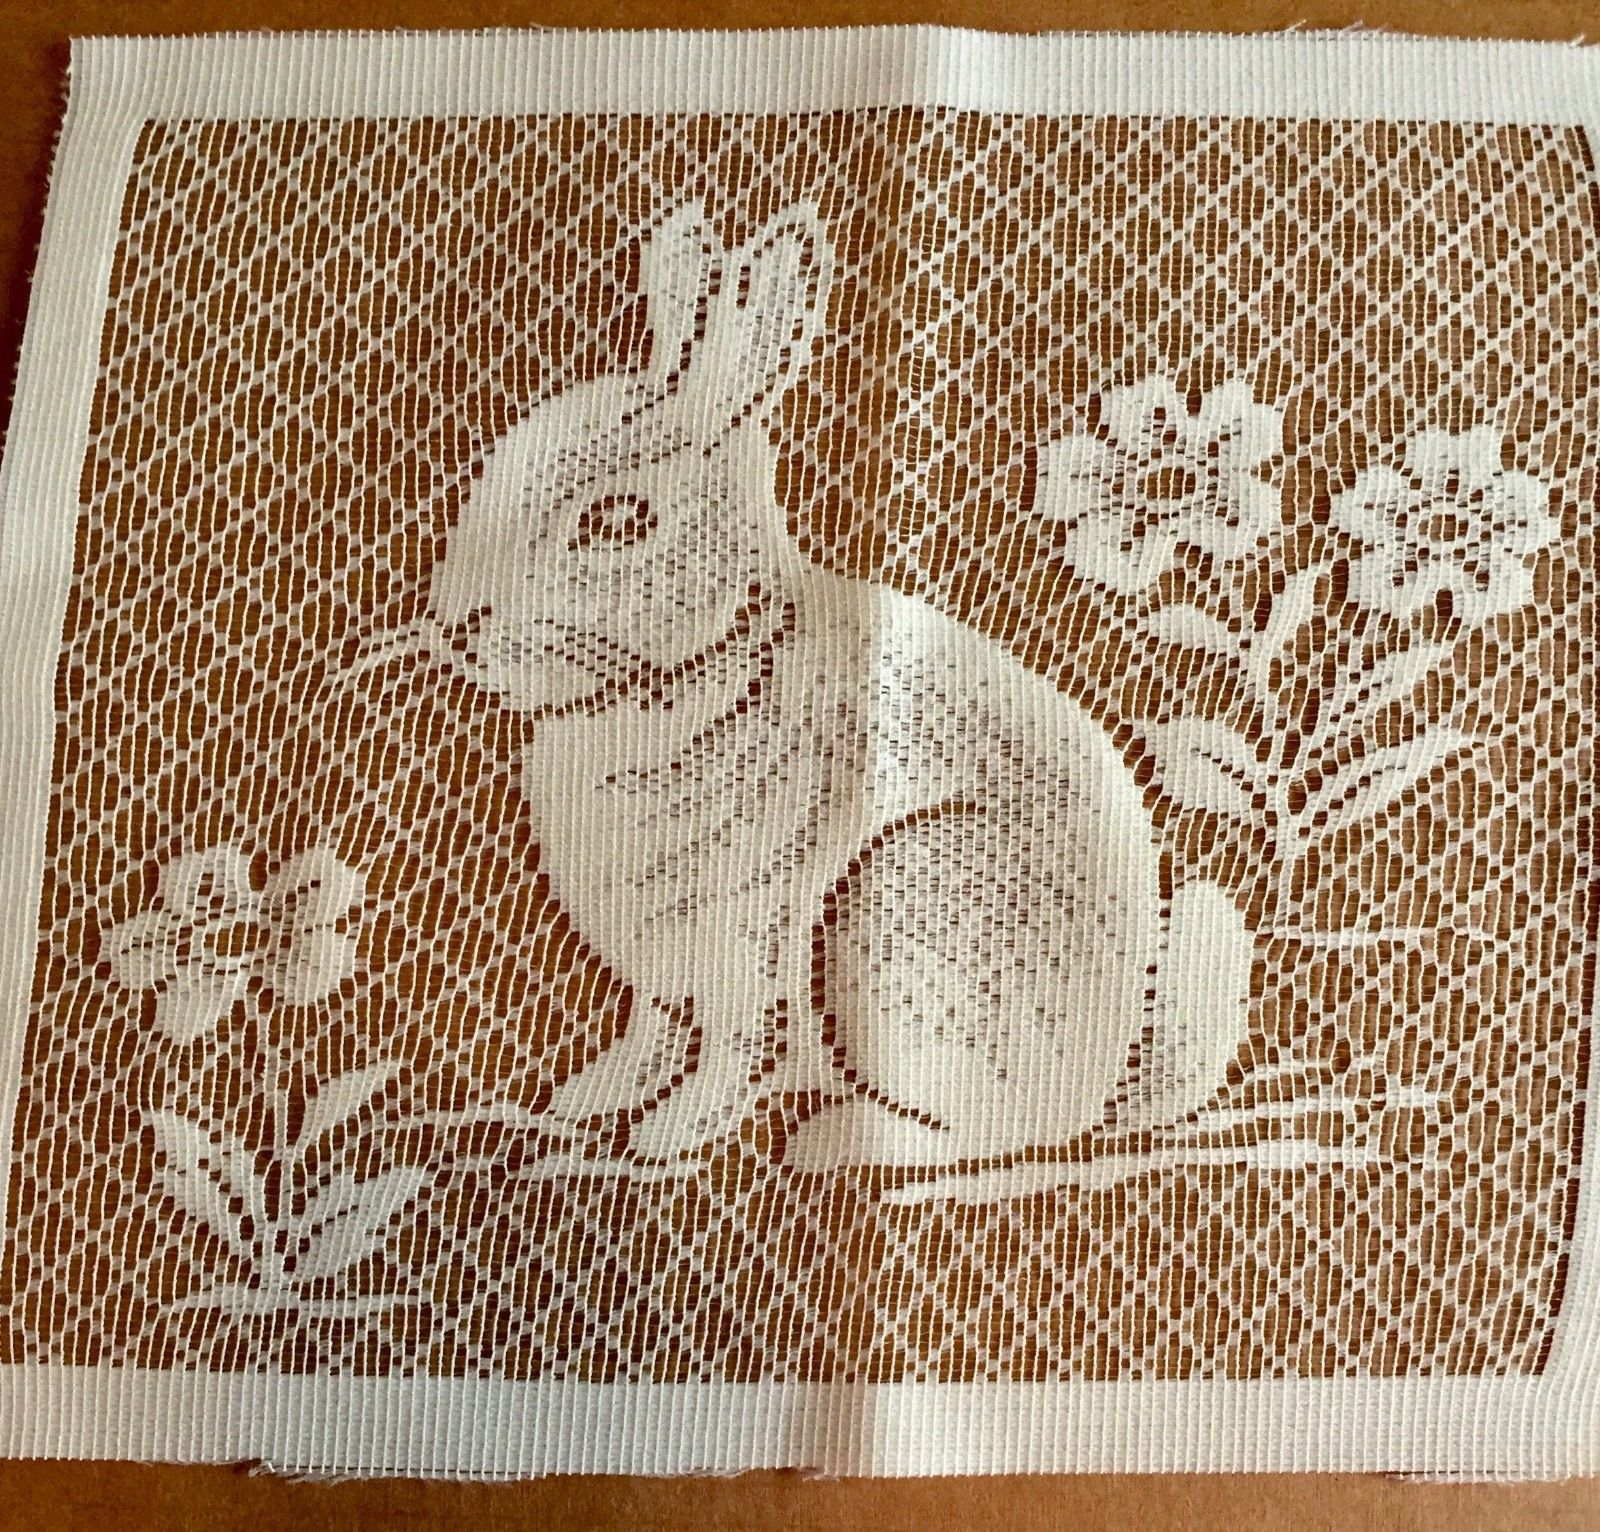 White Lace Bunny Rabbit Panel Square 10.5 X 9 inches Crafts Easter Flowers image 3